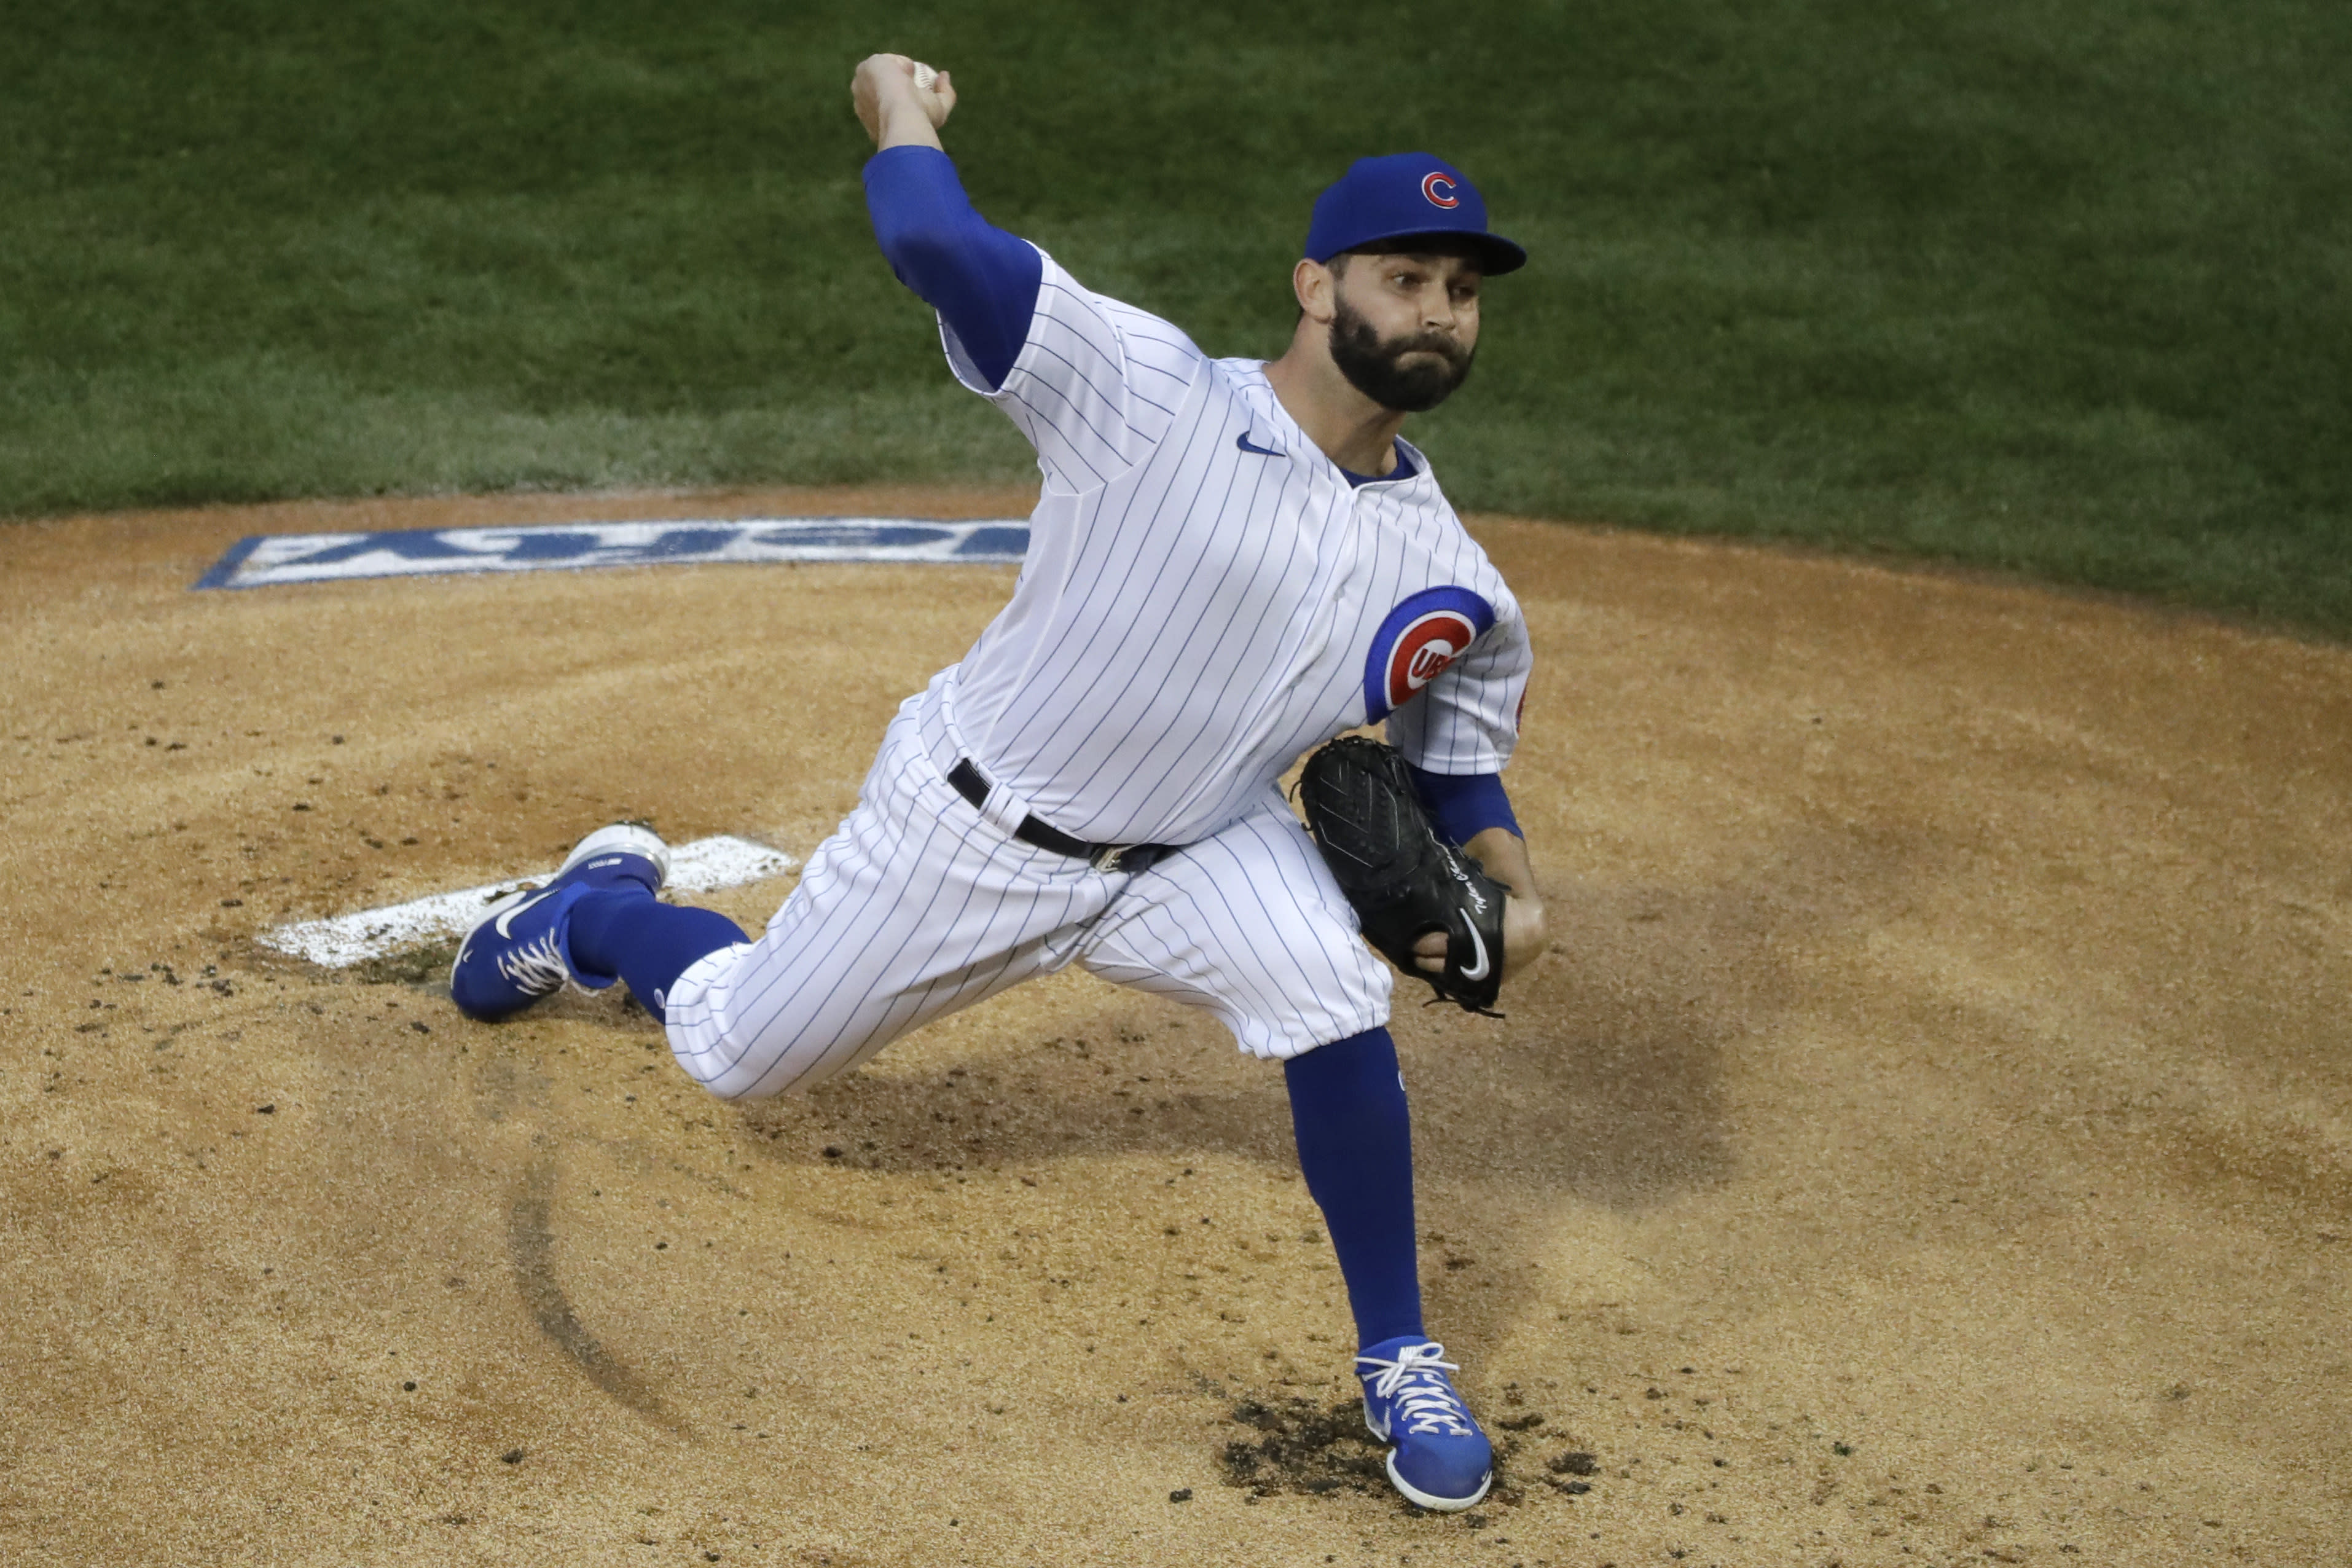 Chicago Cubs starting pitcher Tyler Chatwood throws to aPittsburgh Pirates batter during the first inning of a baseball game in Chicago, Saturday, Aug. 1, 2020. (AP Photo/Nam Y. Huh)